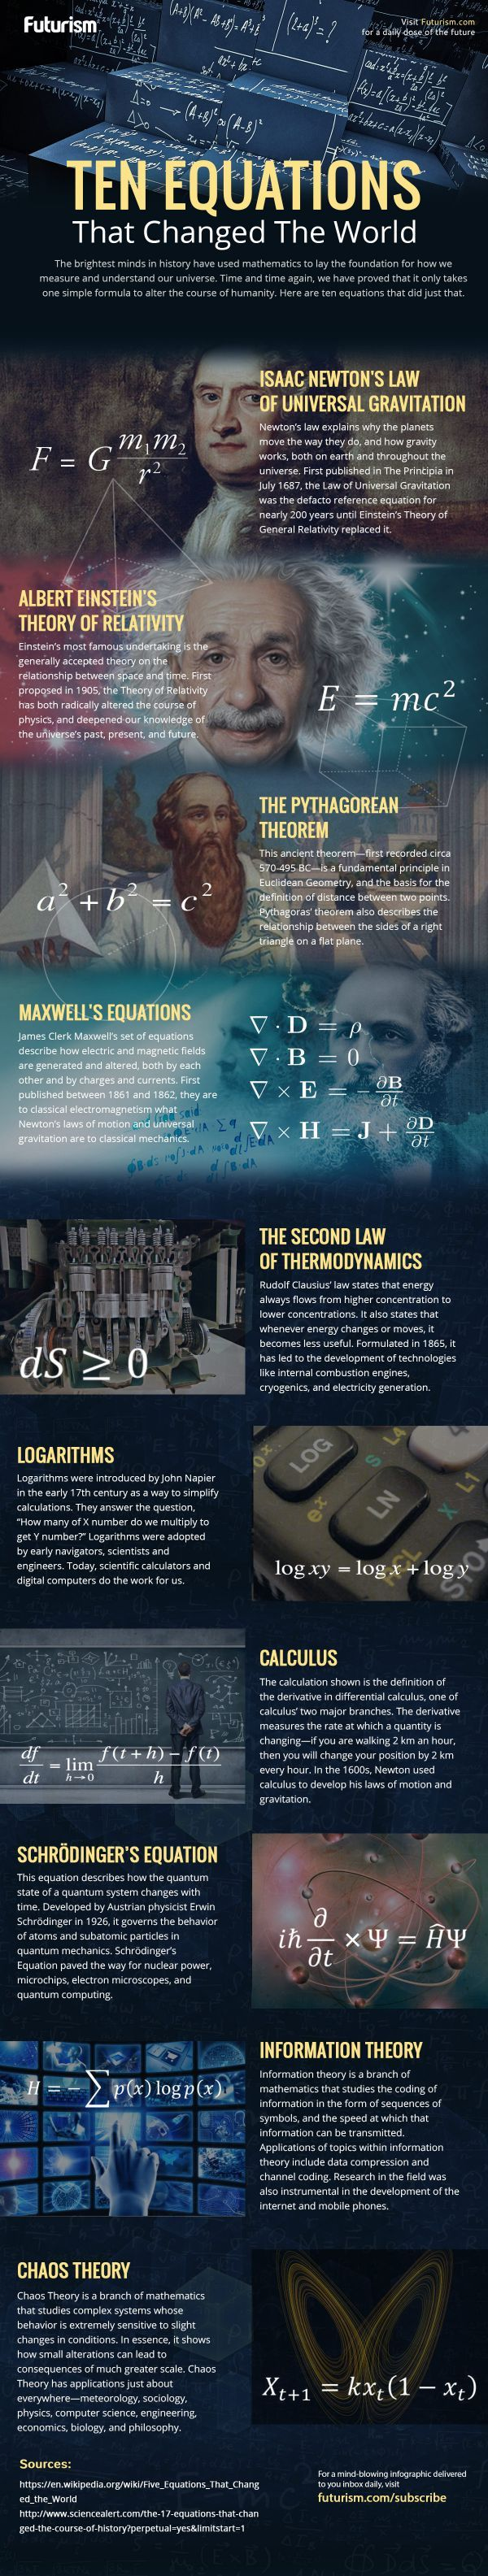 Ten-Equations-That-Changed-The-World_v4